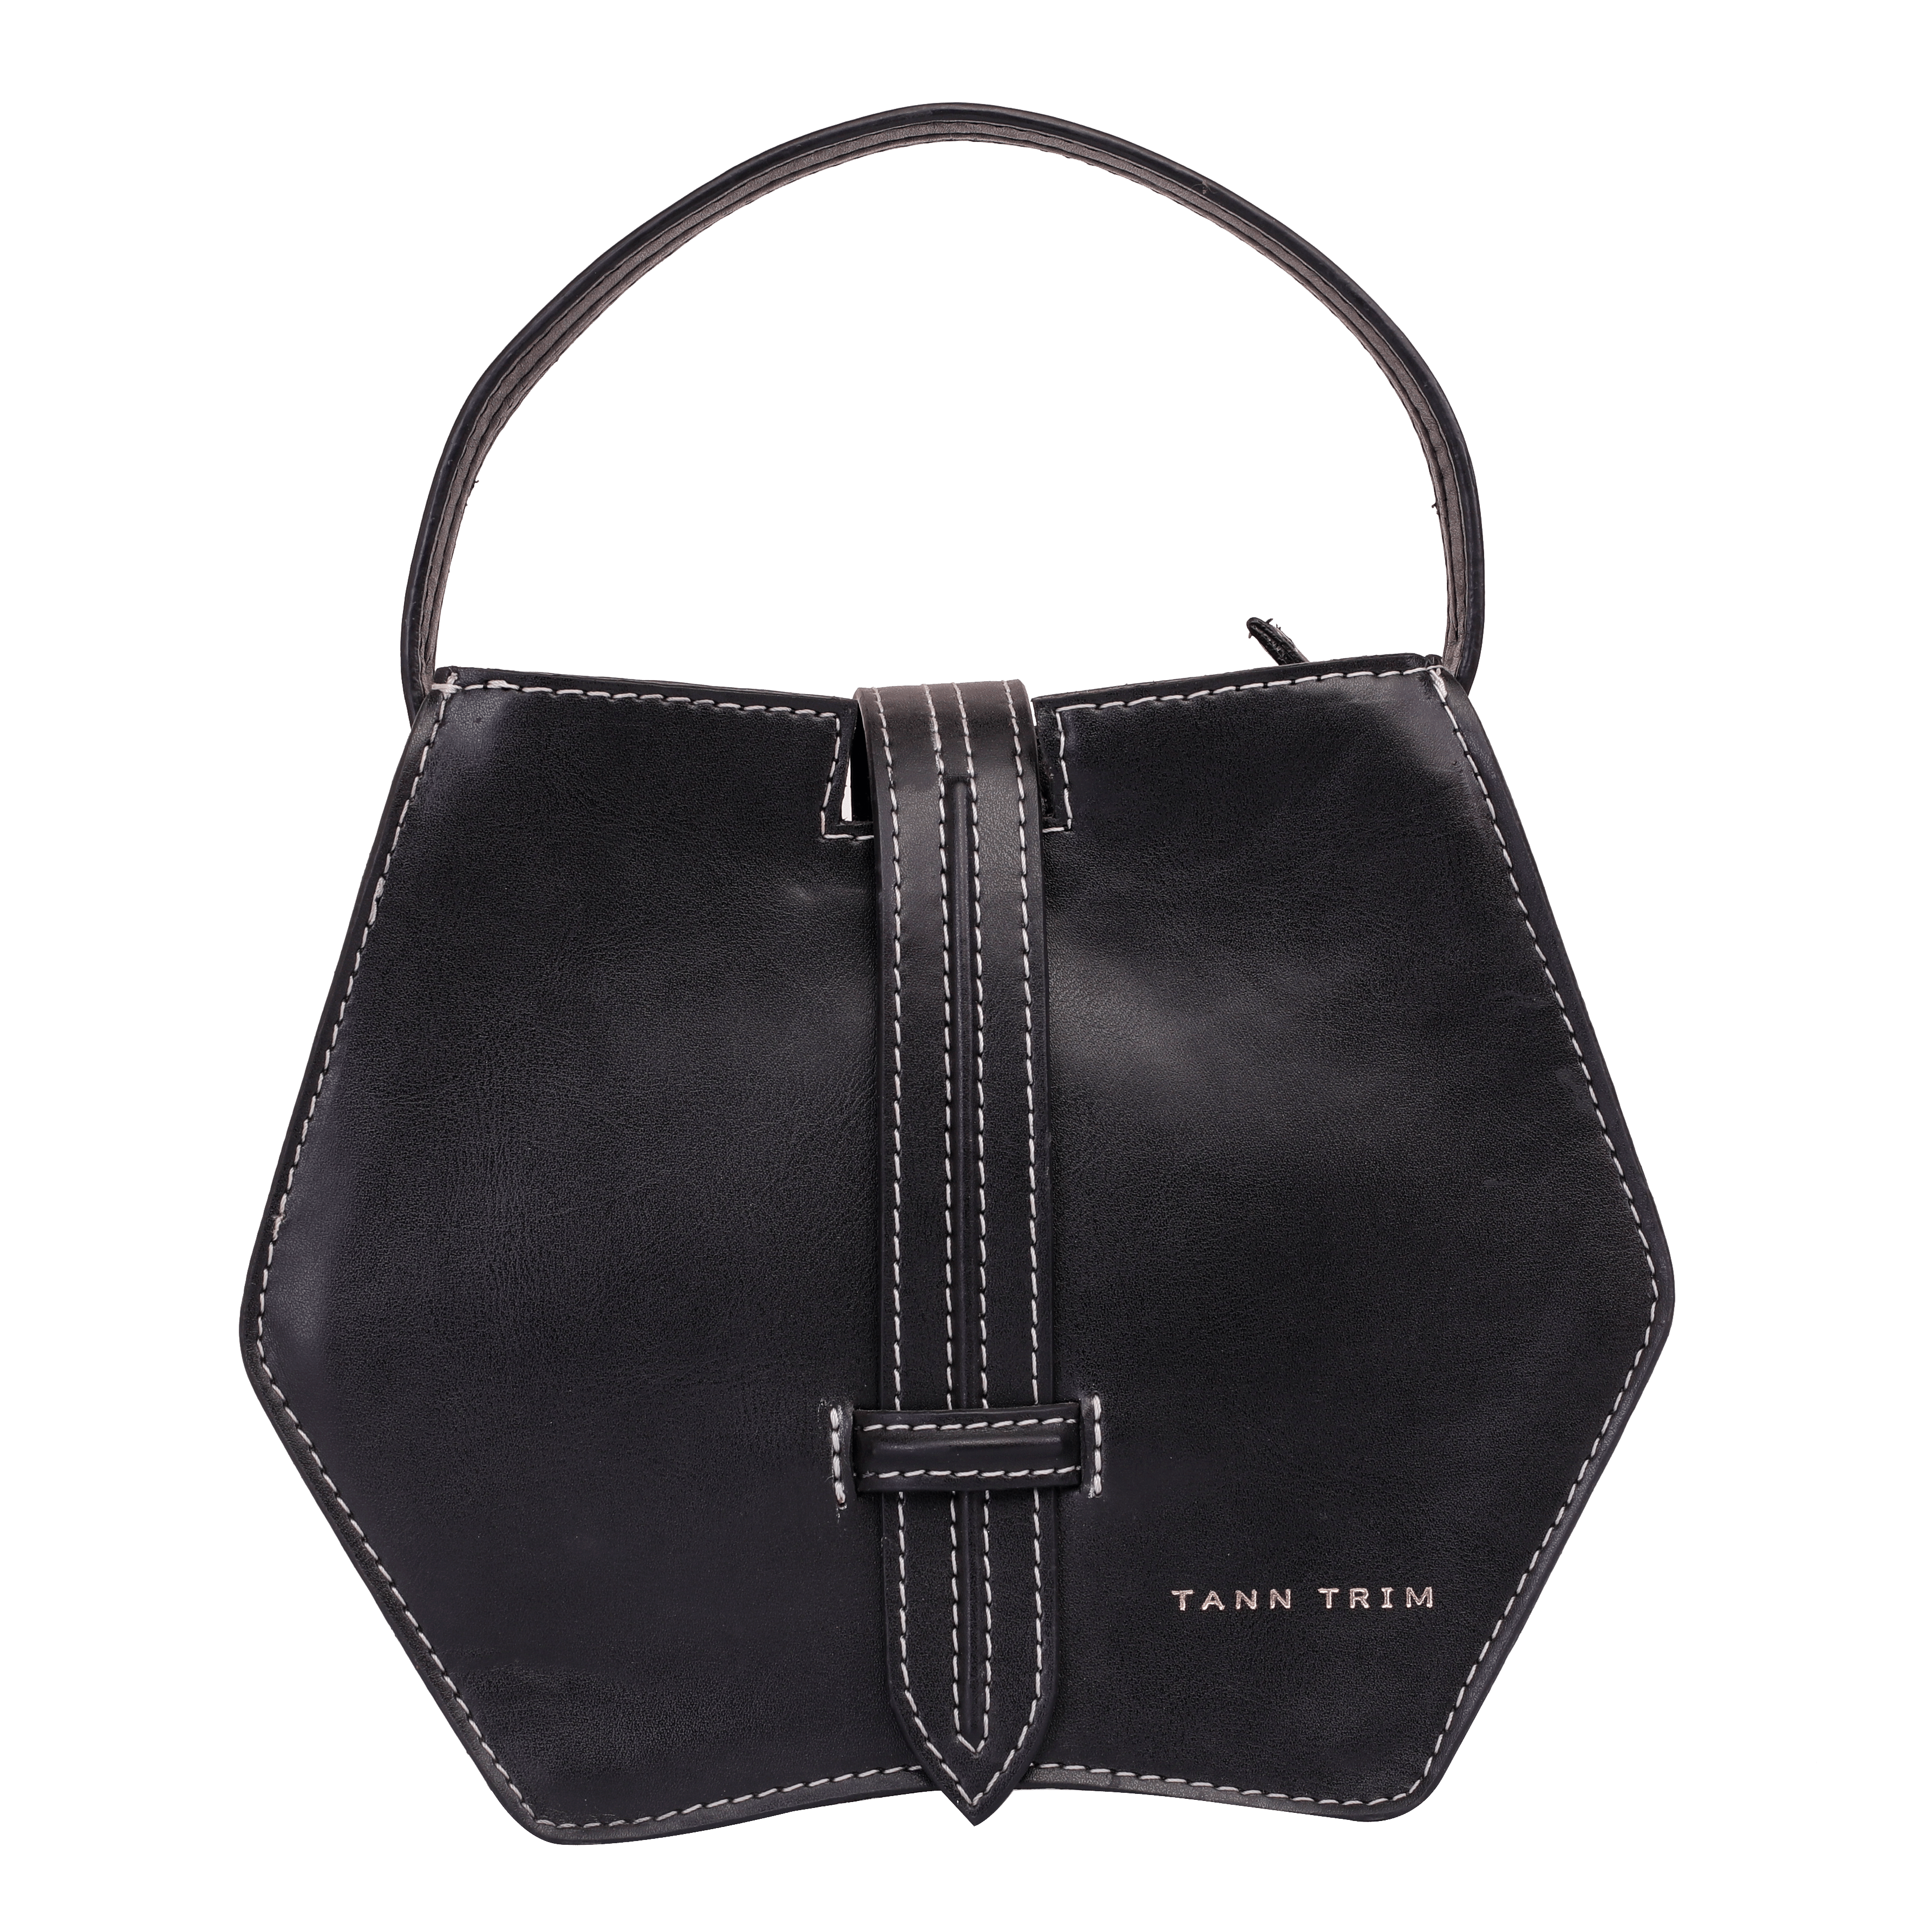 The Classic Structured Handbag